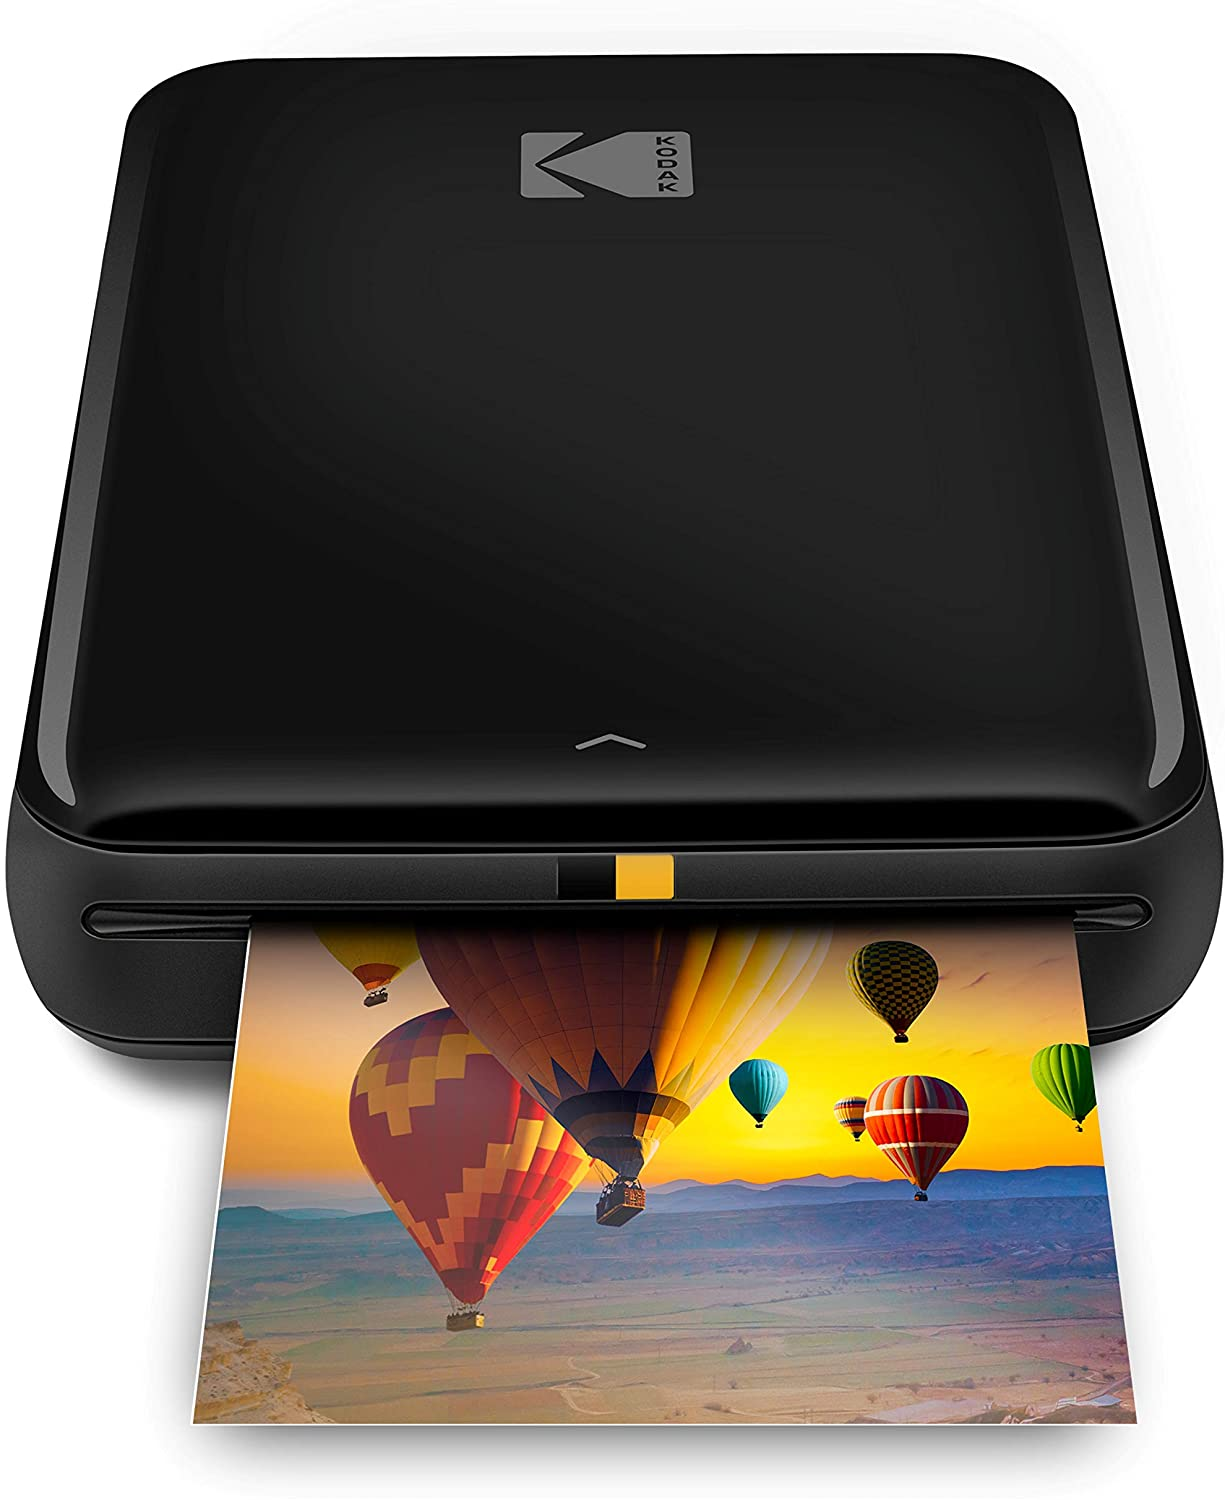 Zink Kodak Step Printer | ZINK Zero Ink Technology Wireless Mobile Photo Printer for Any Bluetooth or NFC Smart Device (Black) Sticker Edition, 2x3 (RODMP20KIT9B)